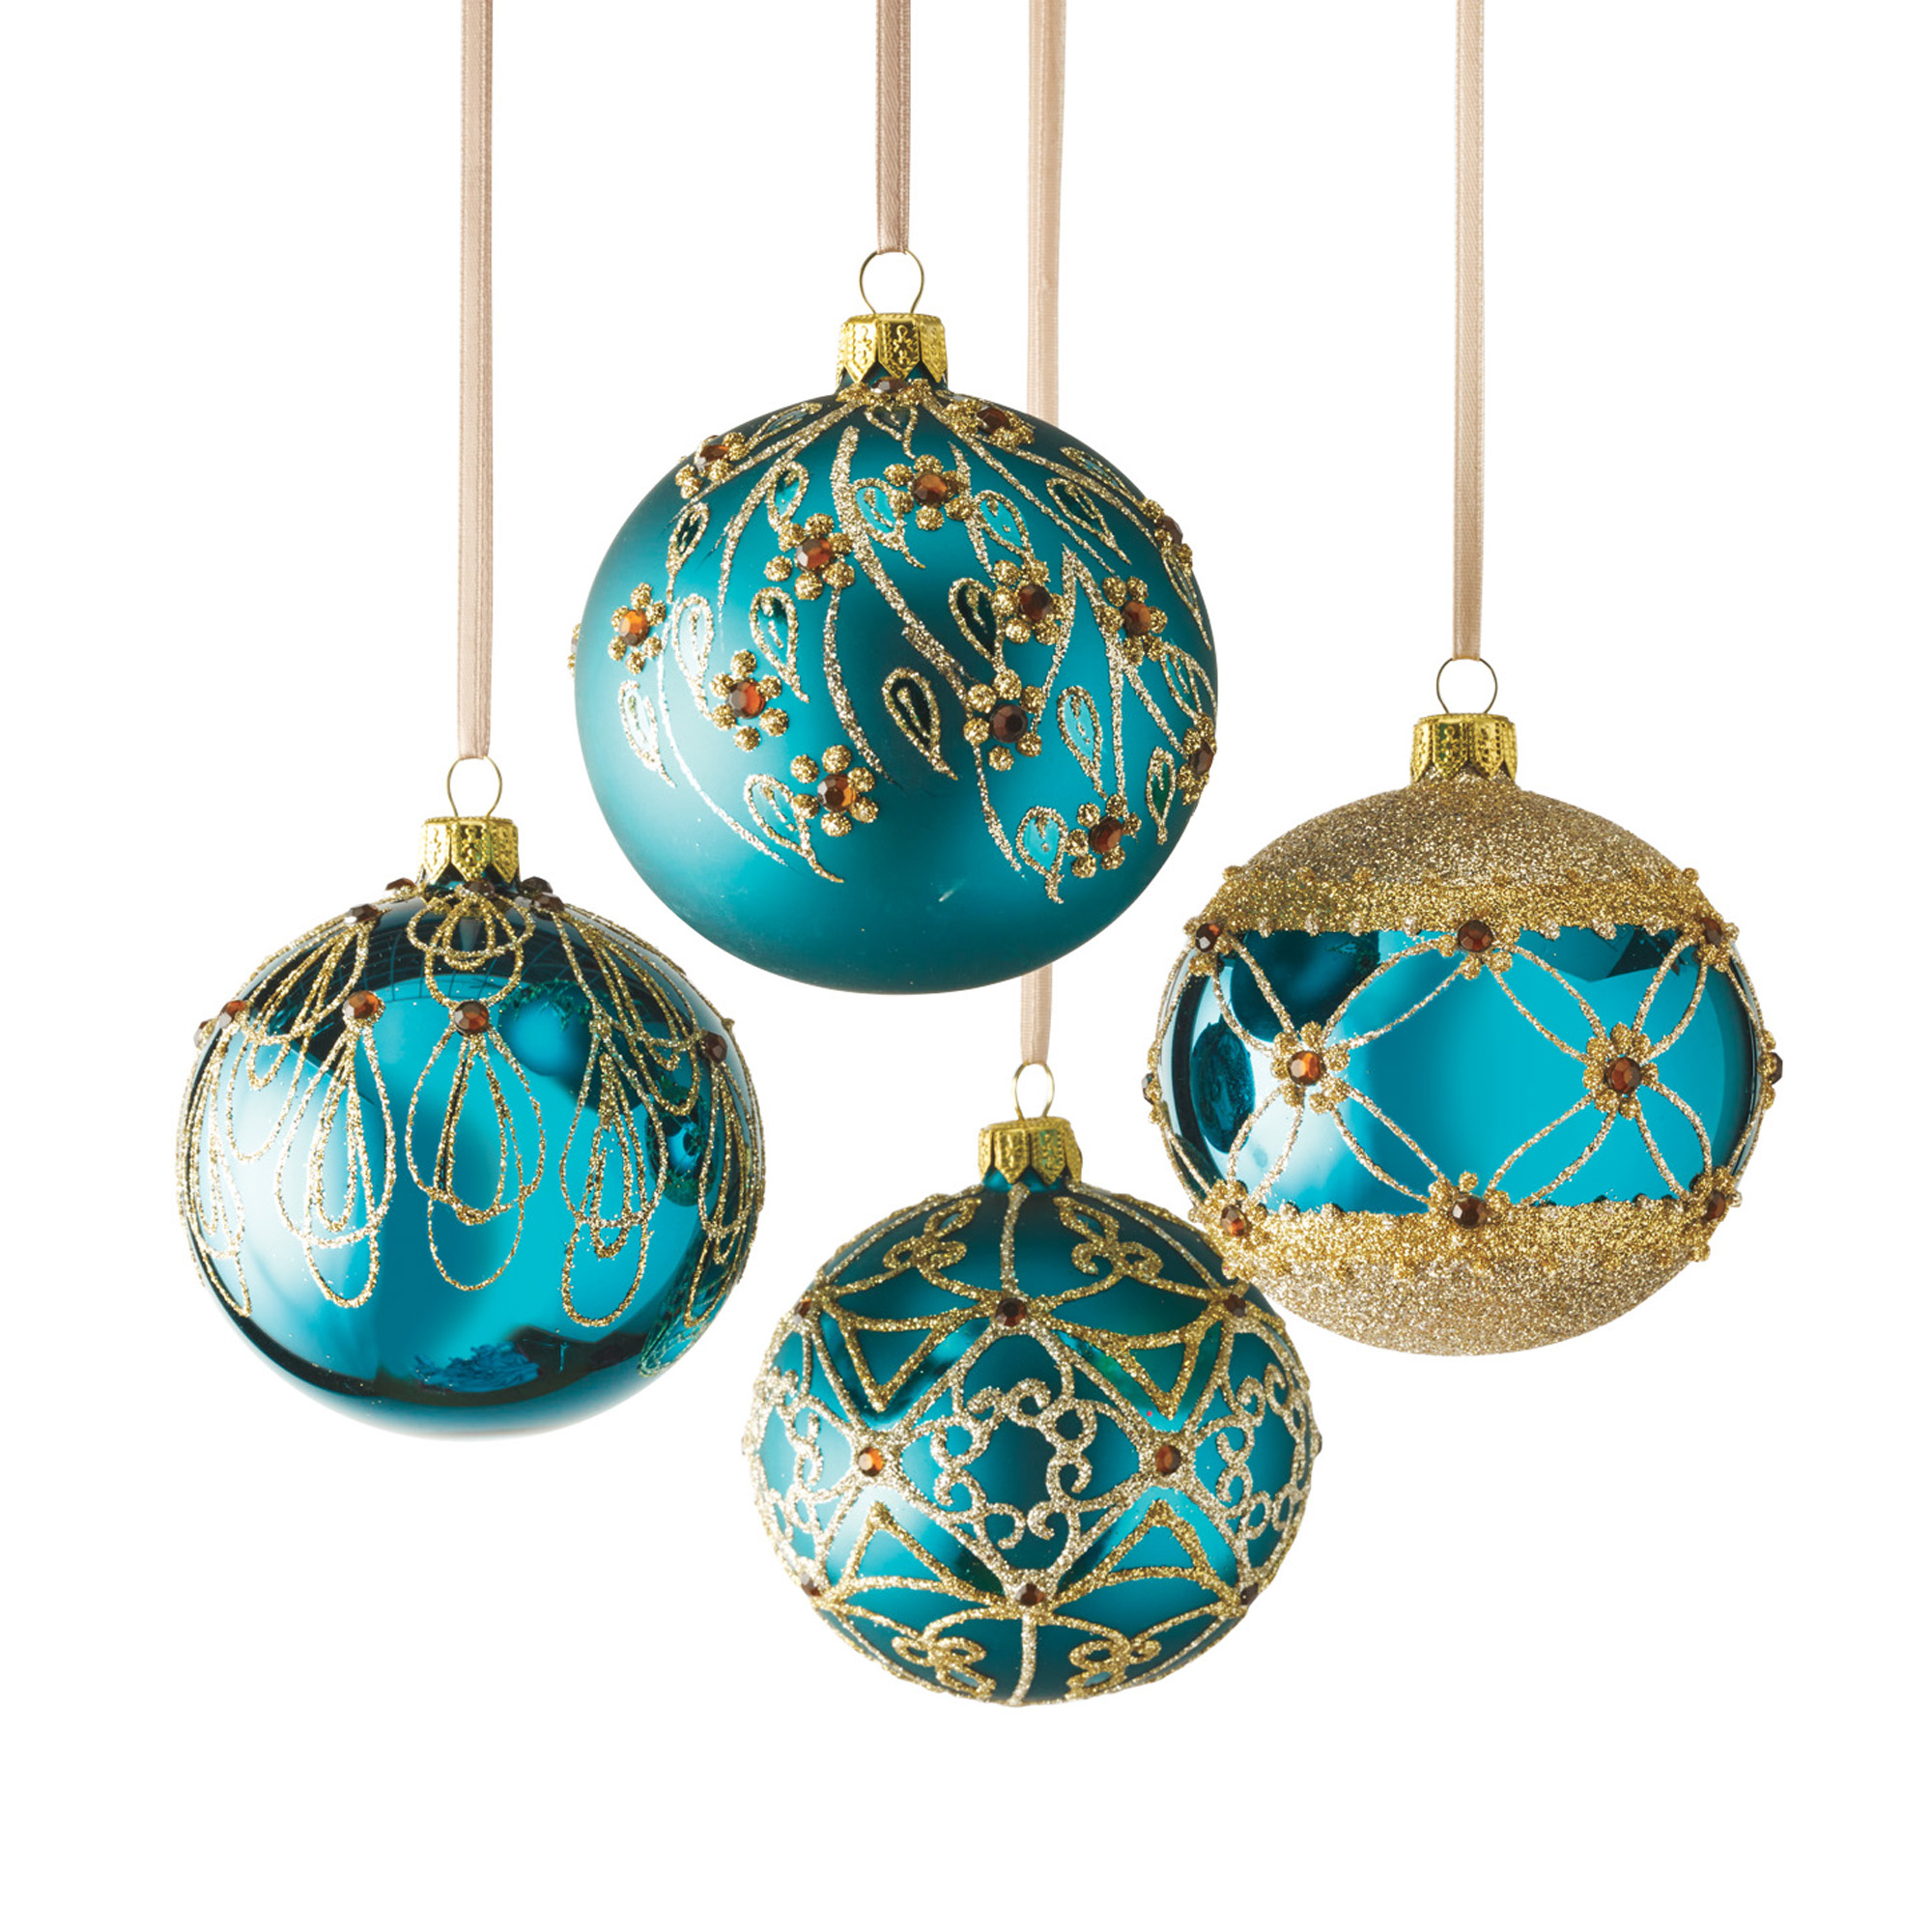 Teal & Gold Ball Ornament Set